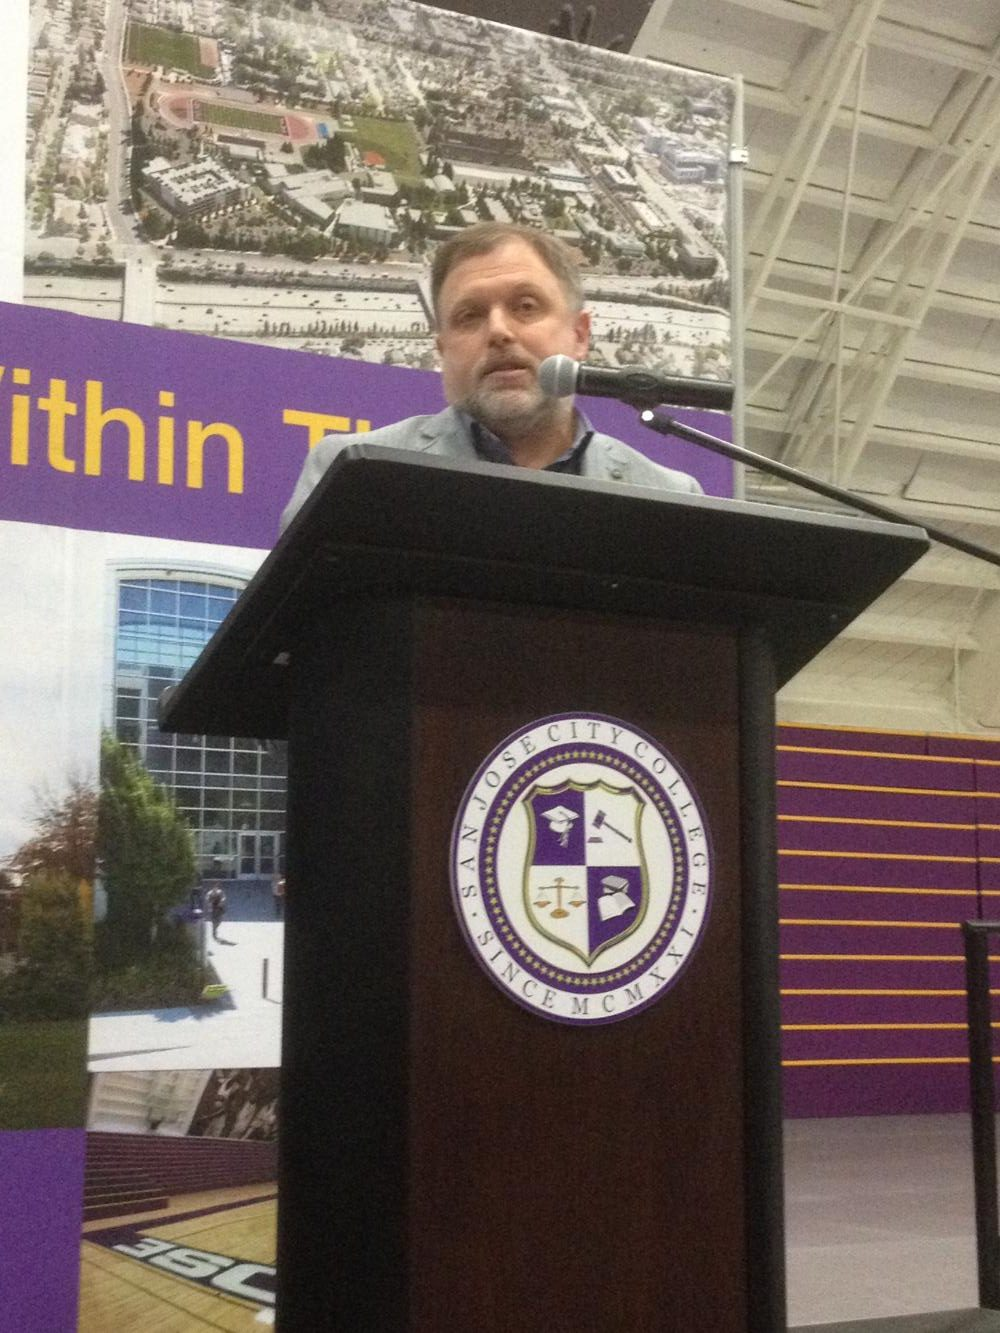 Anti-racist activist Tim Wise lectures and opens active discussion with students on the San Jose City College campus Thursday, April 20.